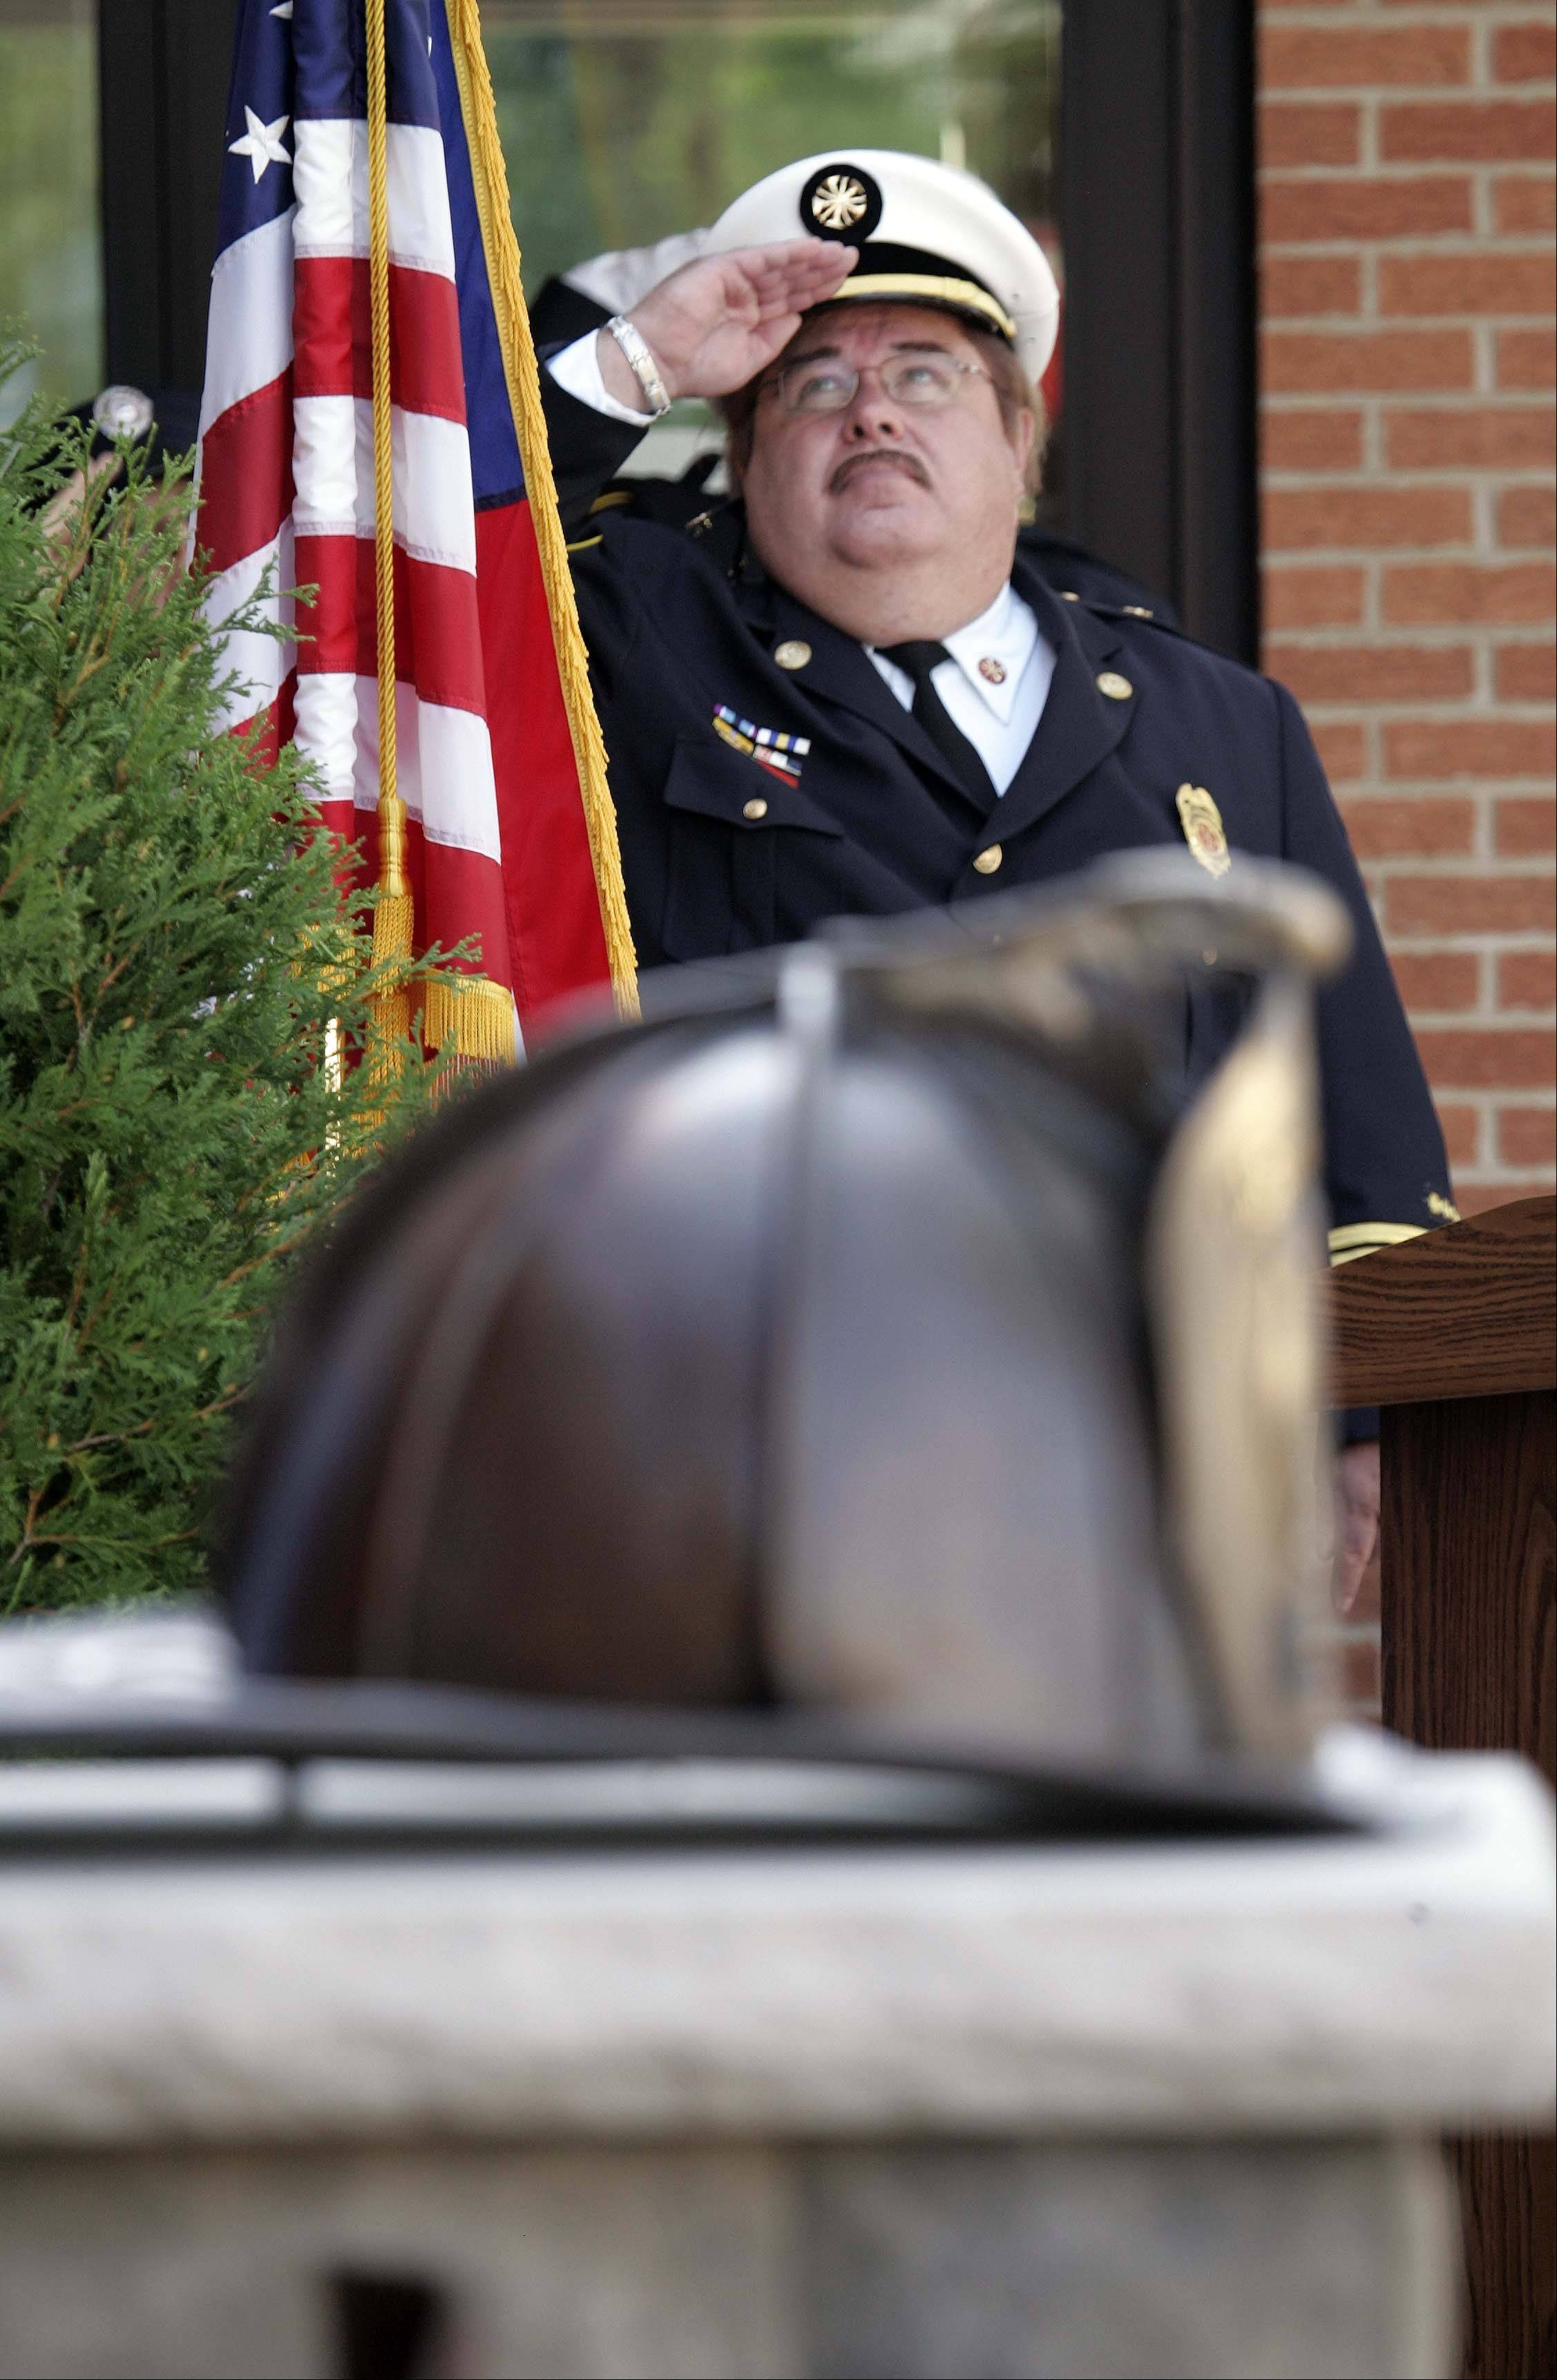 Carpentersville Fire Chief John Schuldt took part in the department's dedication of its firefighter and Sept. 11 memorial in September 2011.